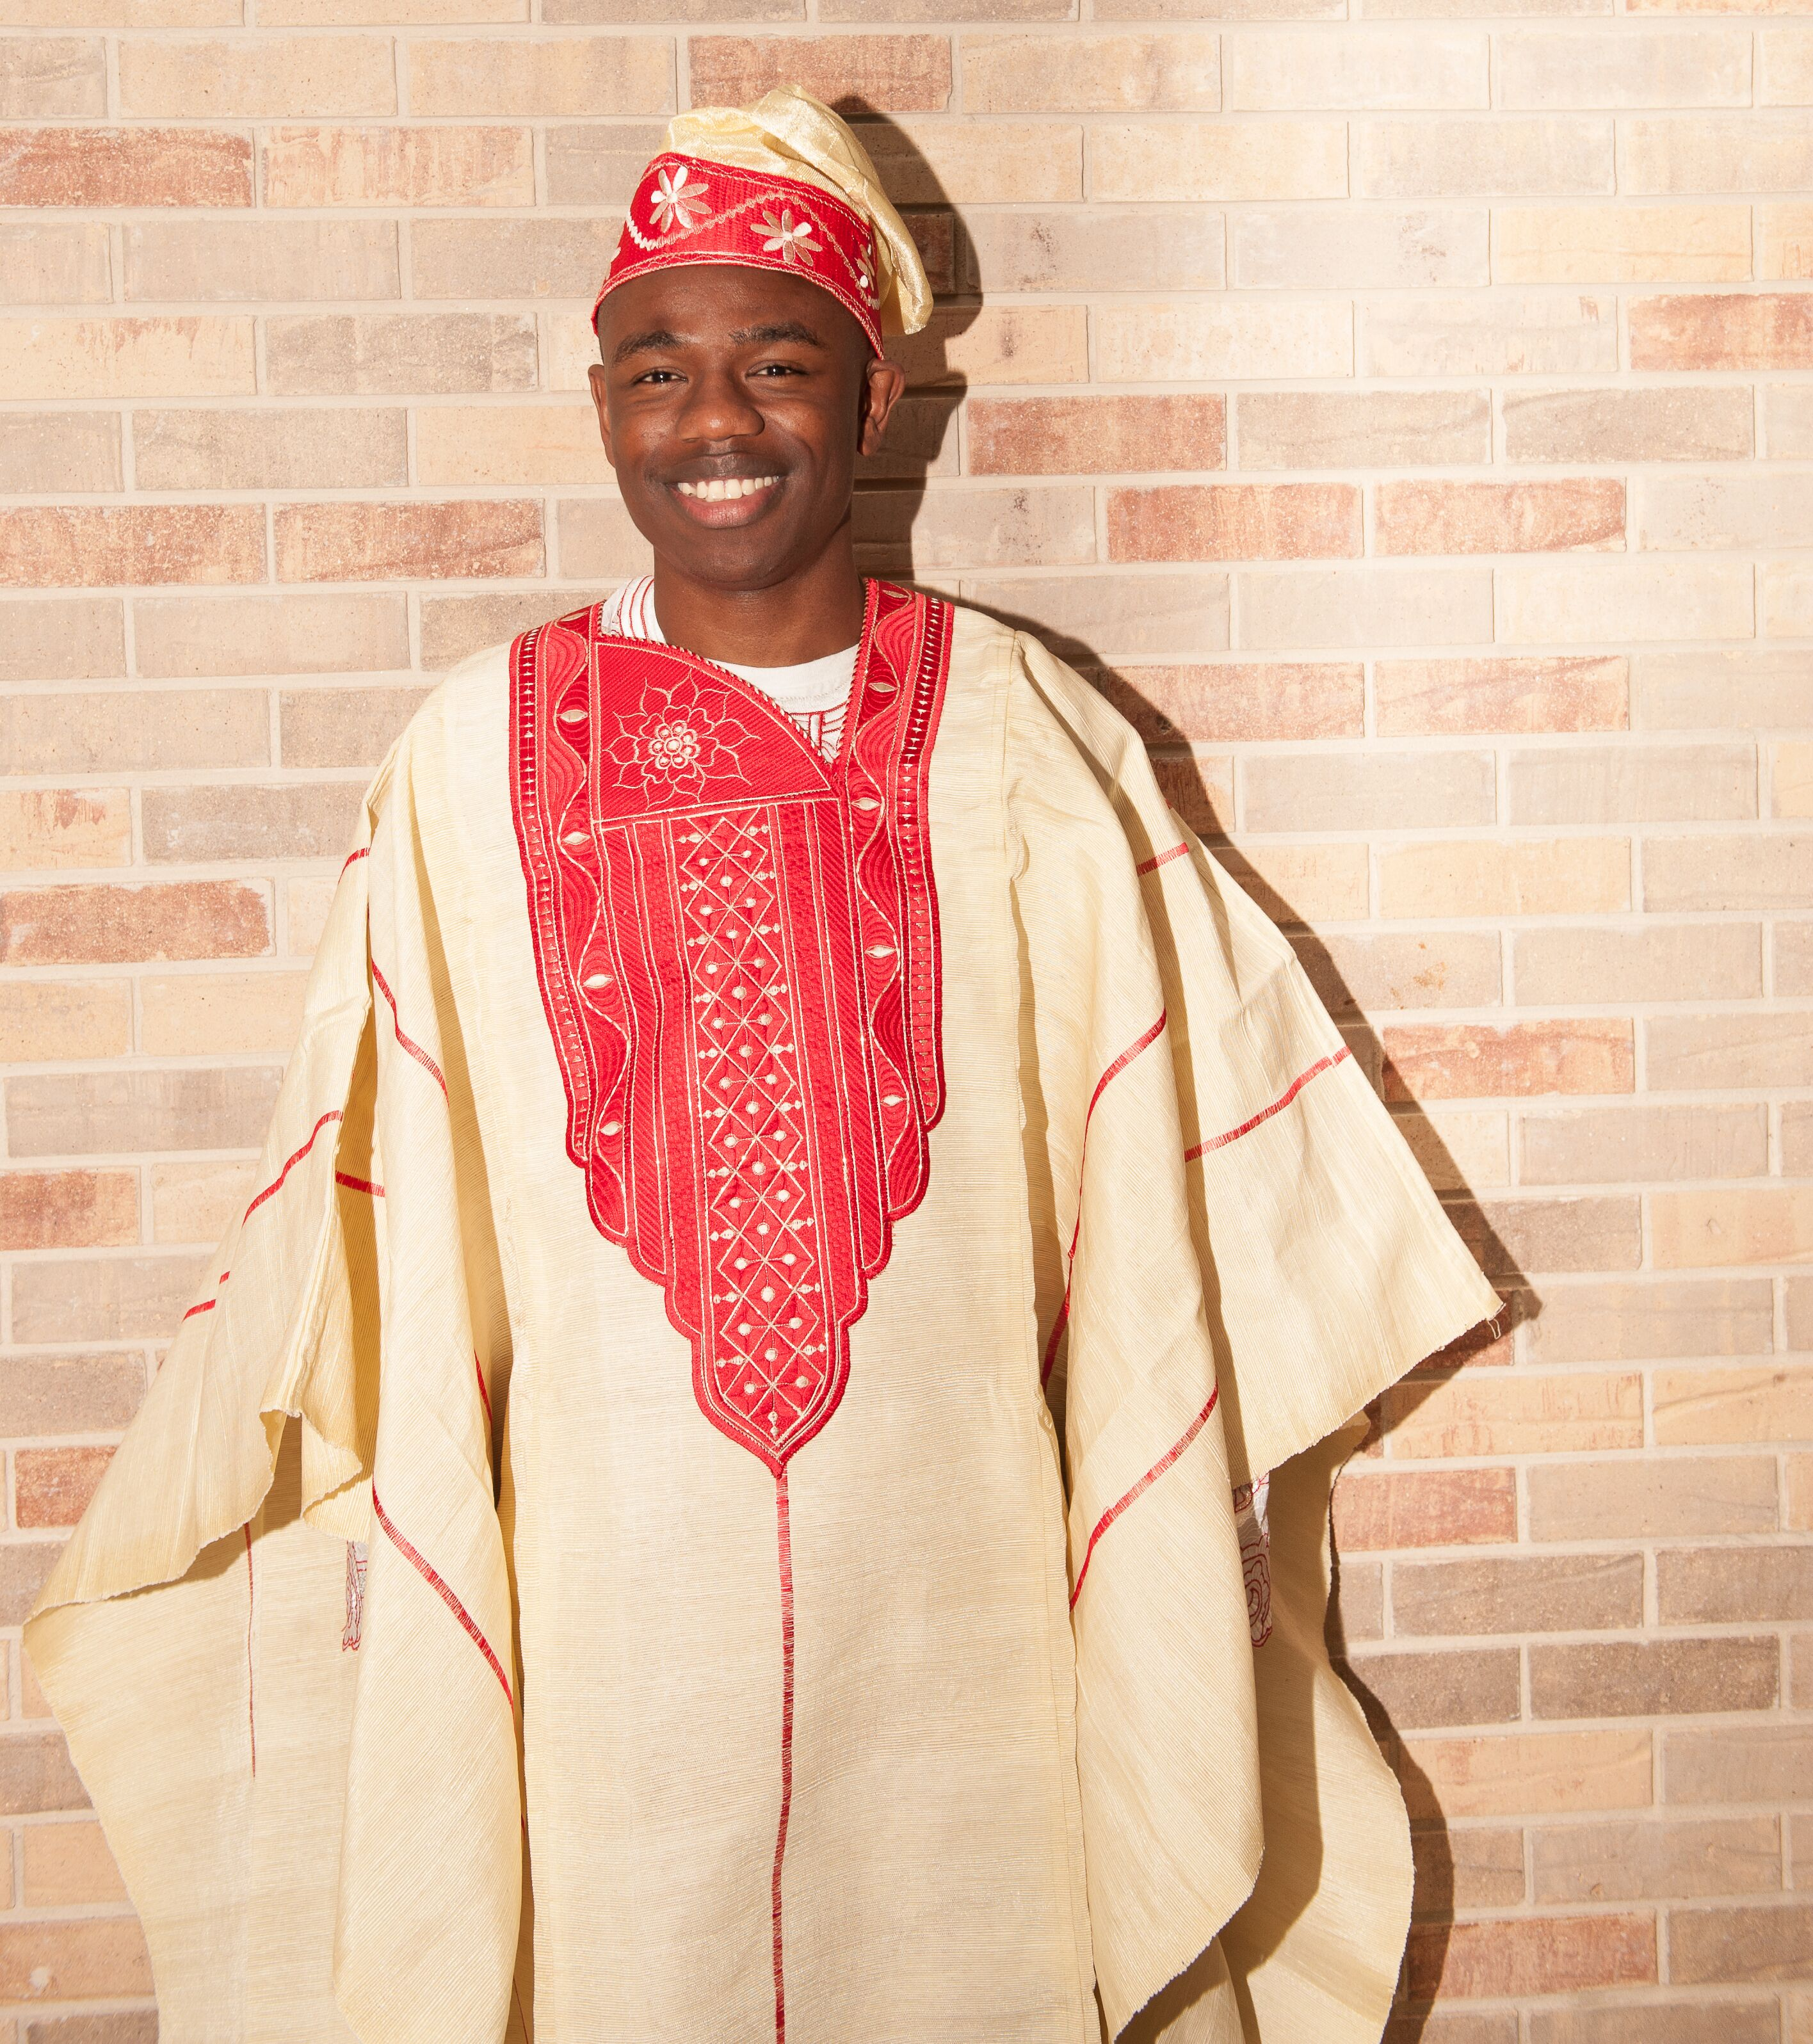 Traditional Wedding Gift From Groom To Bride: Traditional Nigerian Red Groom's Wedding Attire